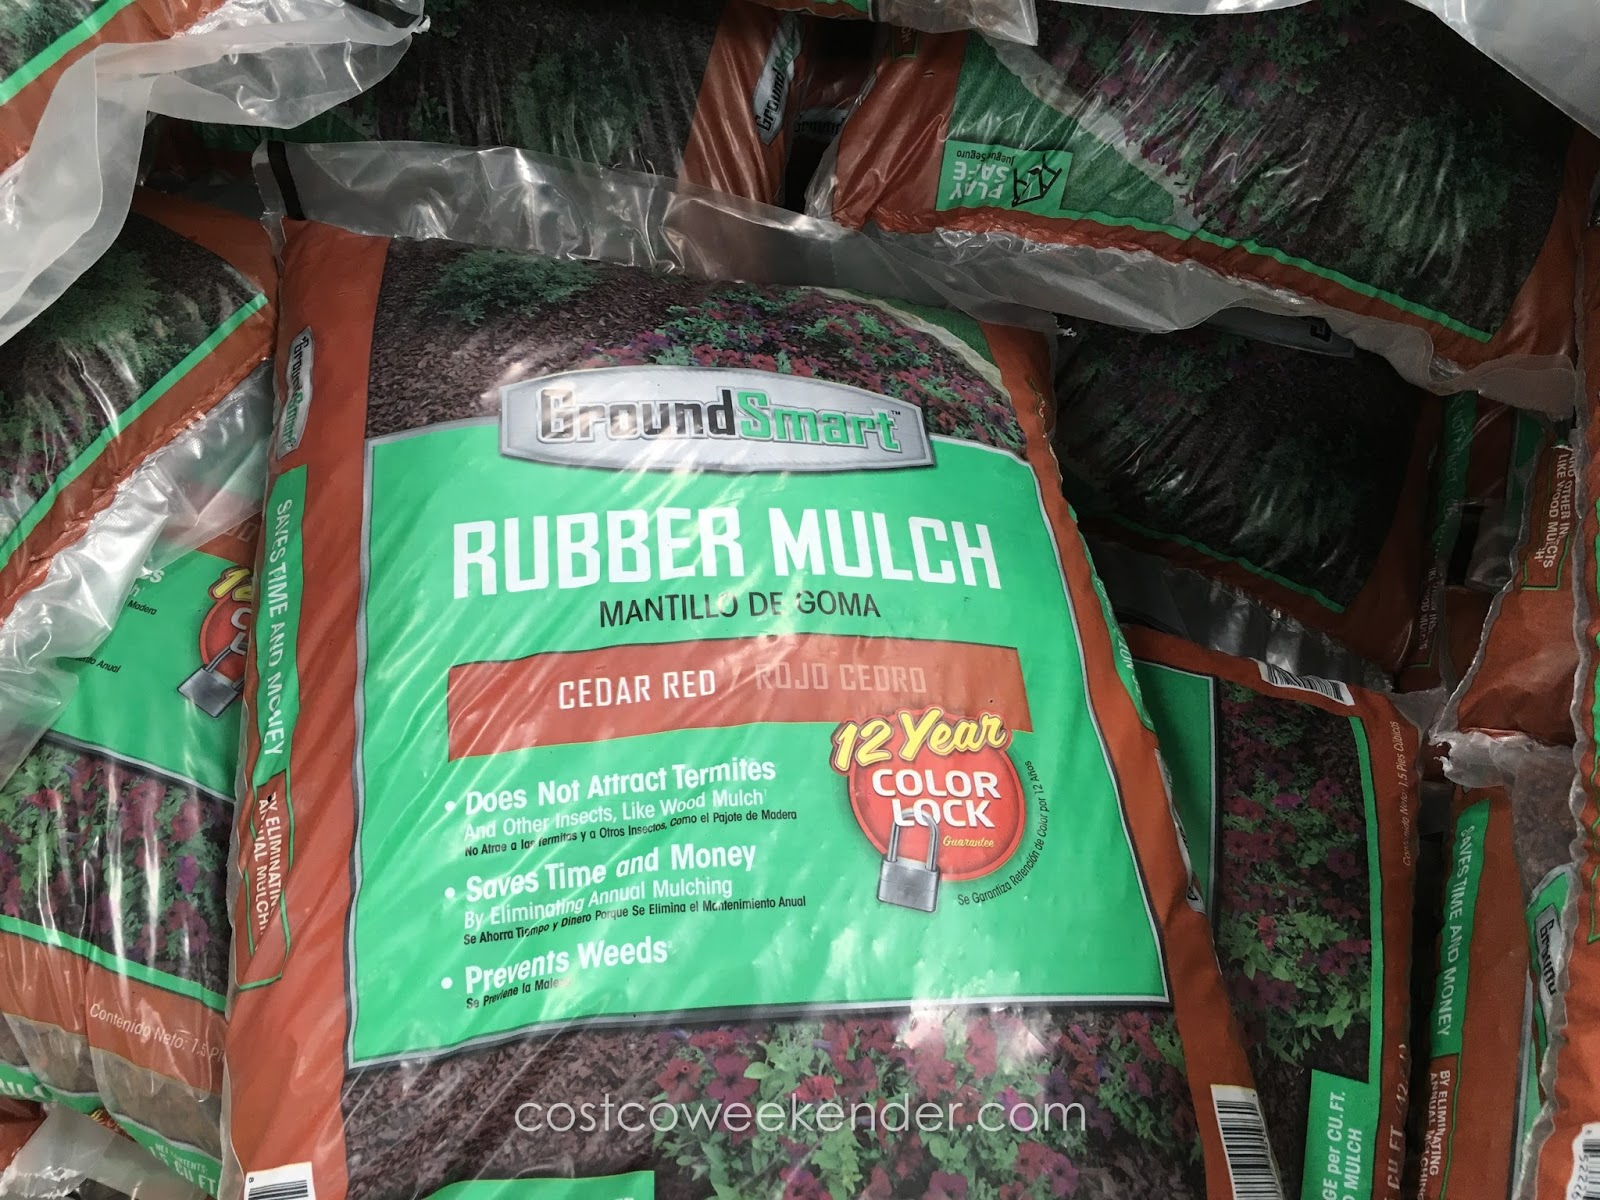 Stop those weeds dead on their tracks with GroundSmart Rubber Mulch